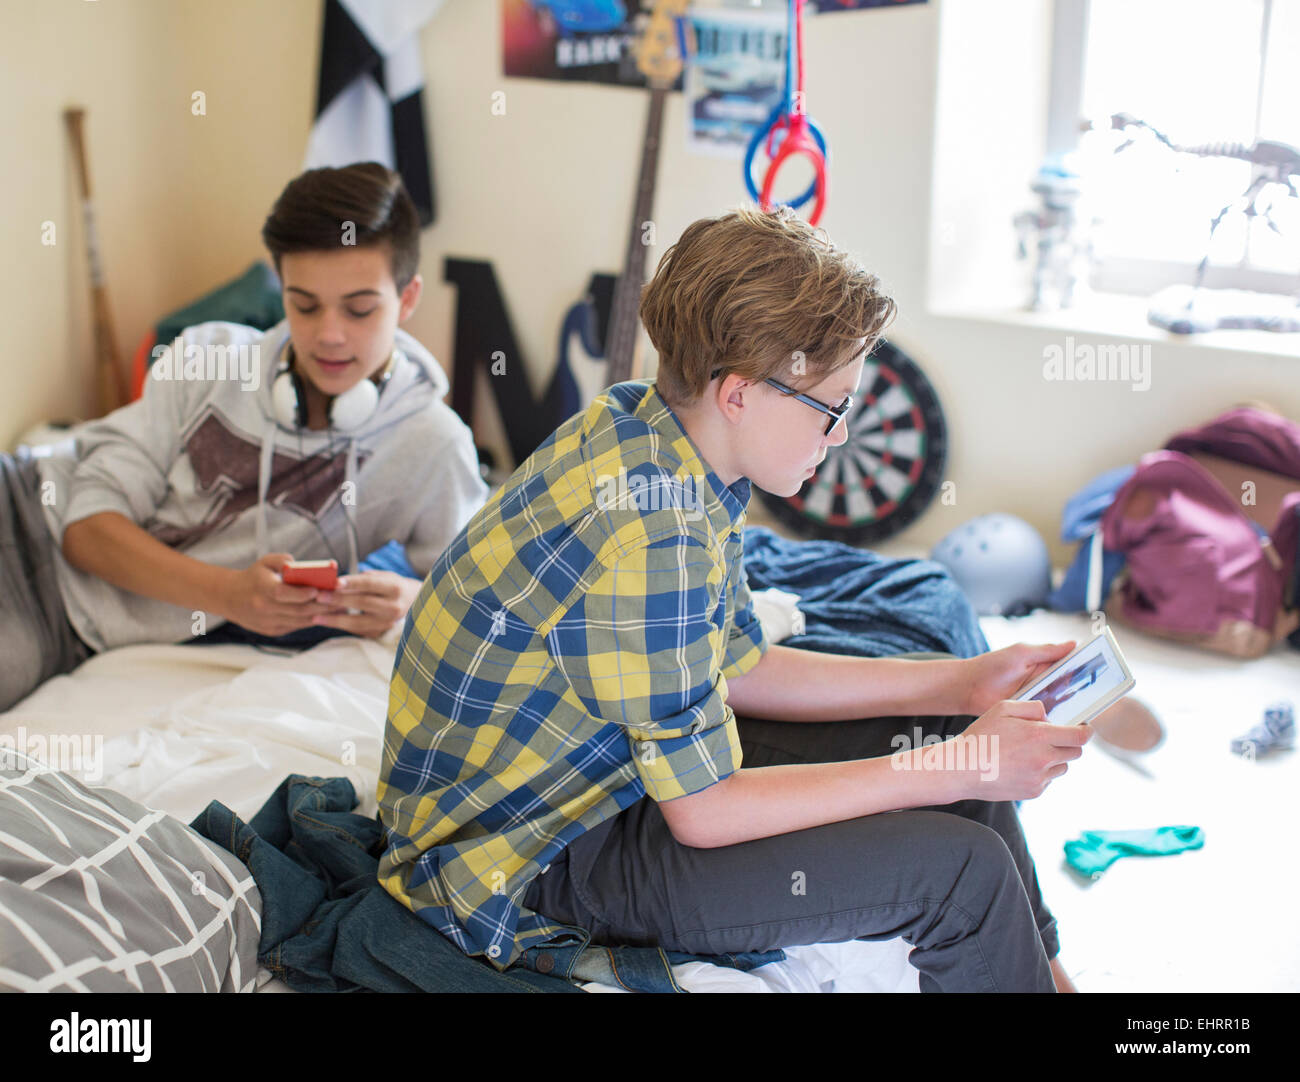 Two teenage boys using digital devices in room - Stock Image